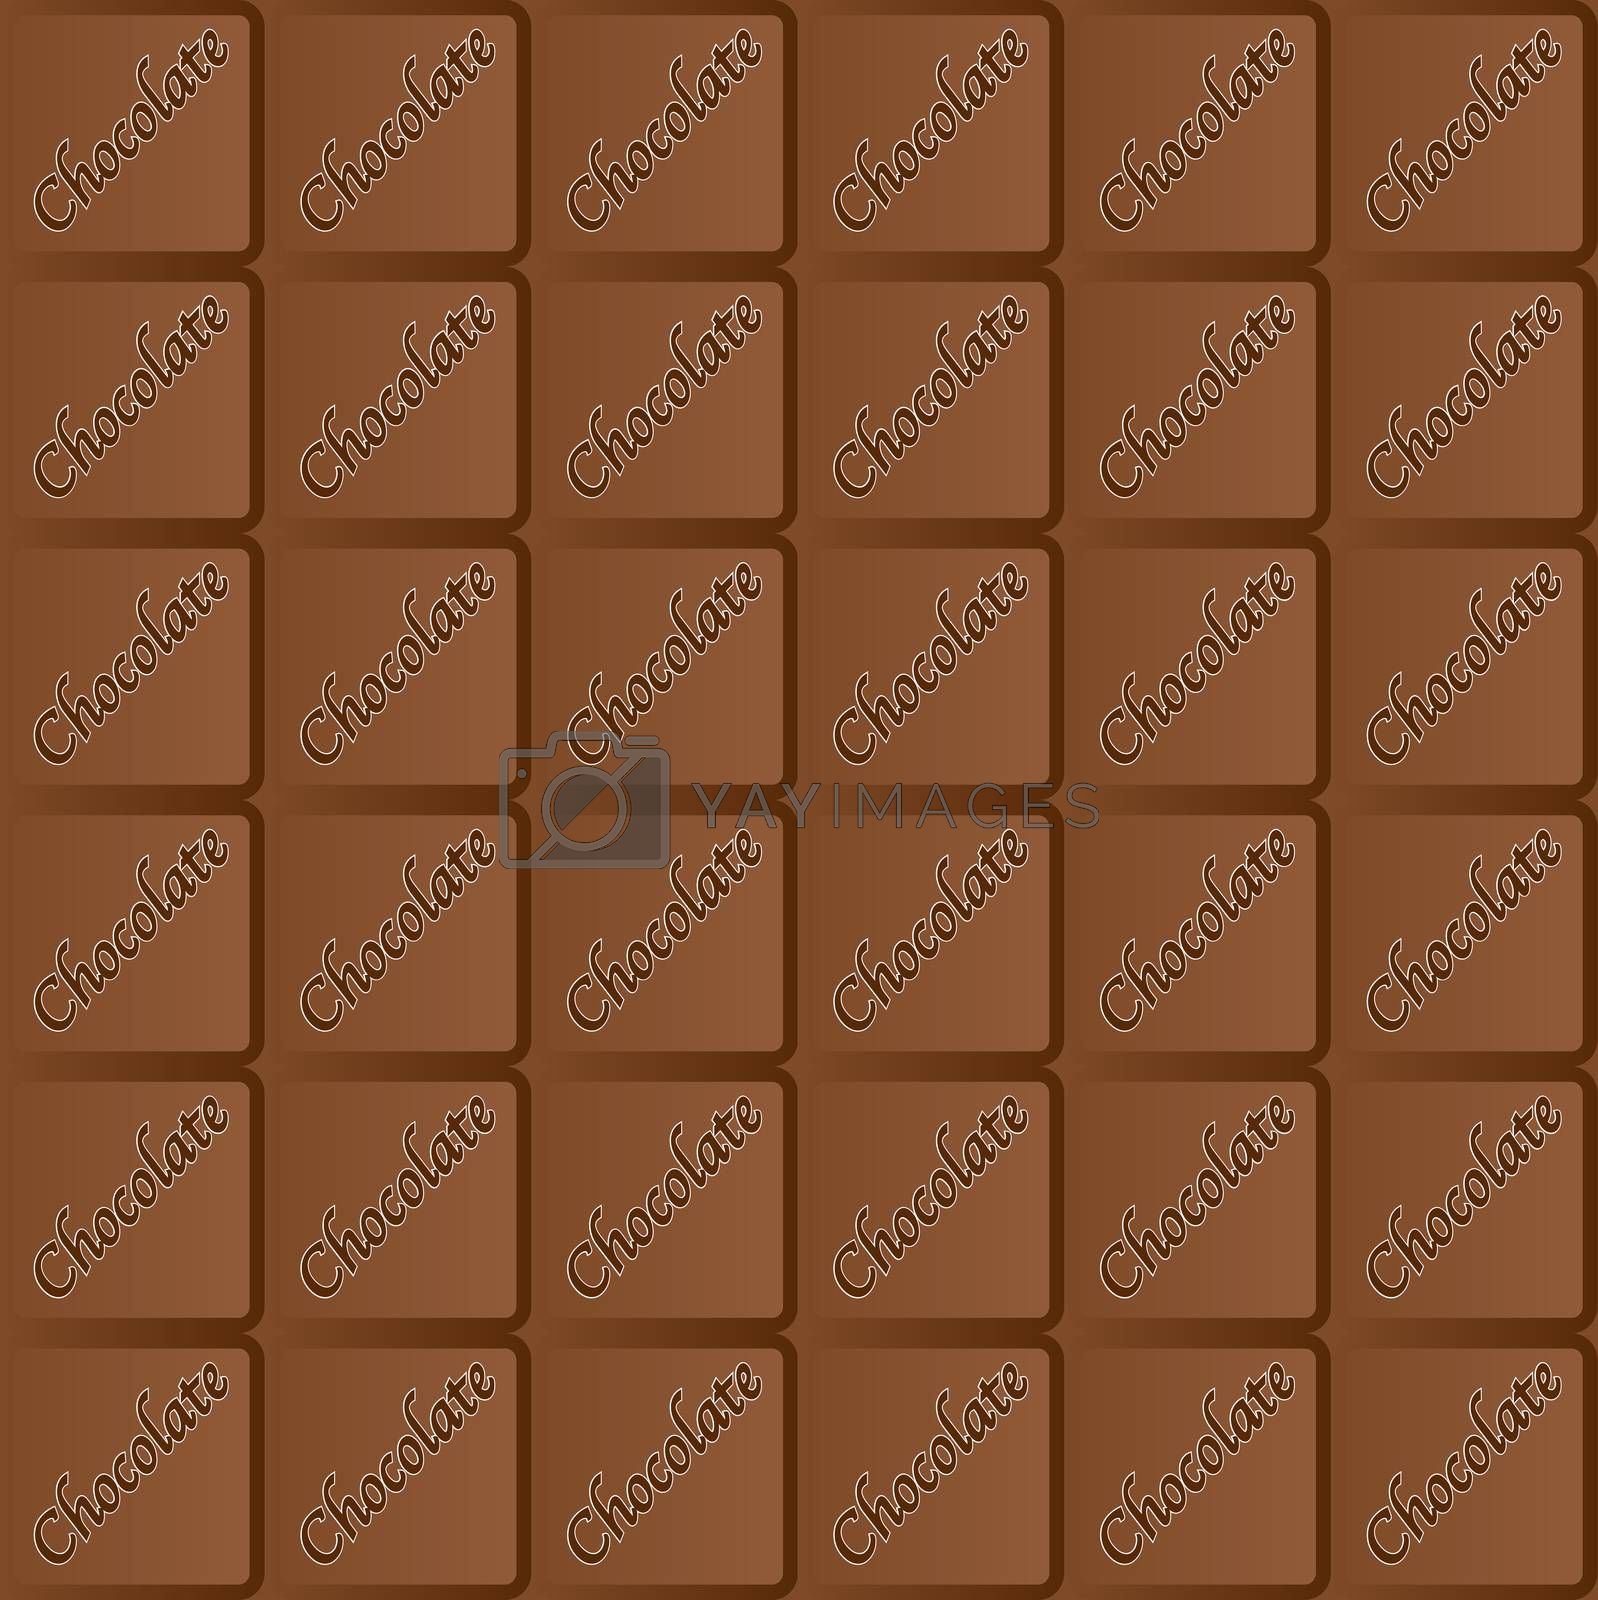 A typical bar of milk Chocolate as a background and repeating seamless pattern